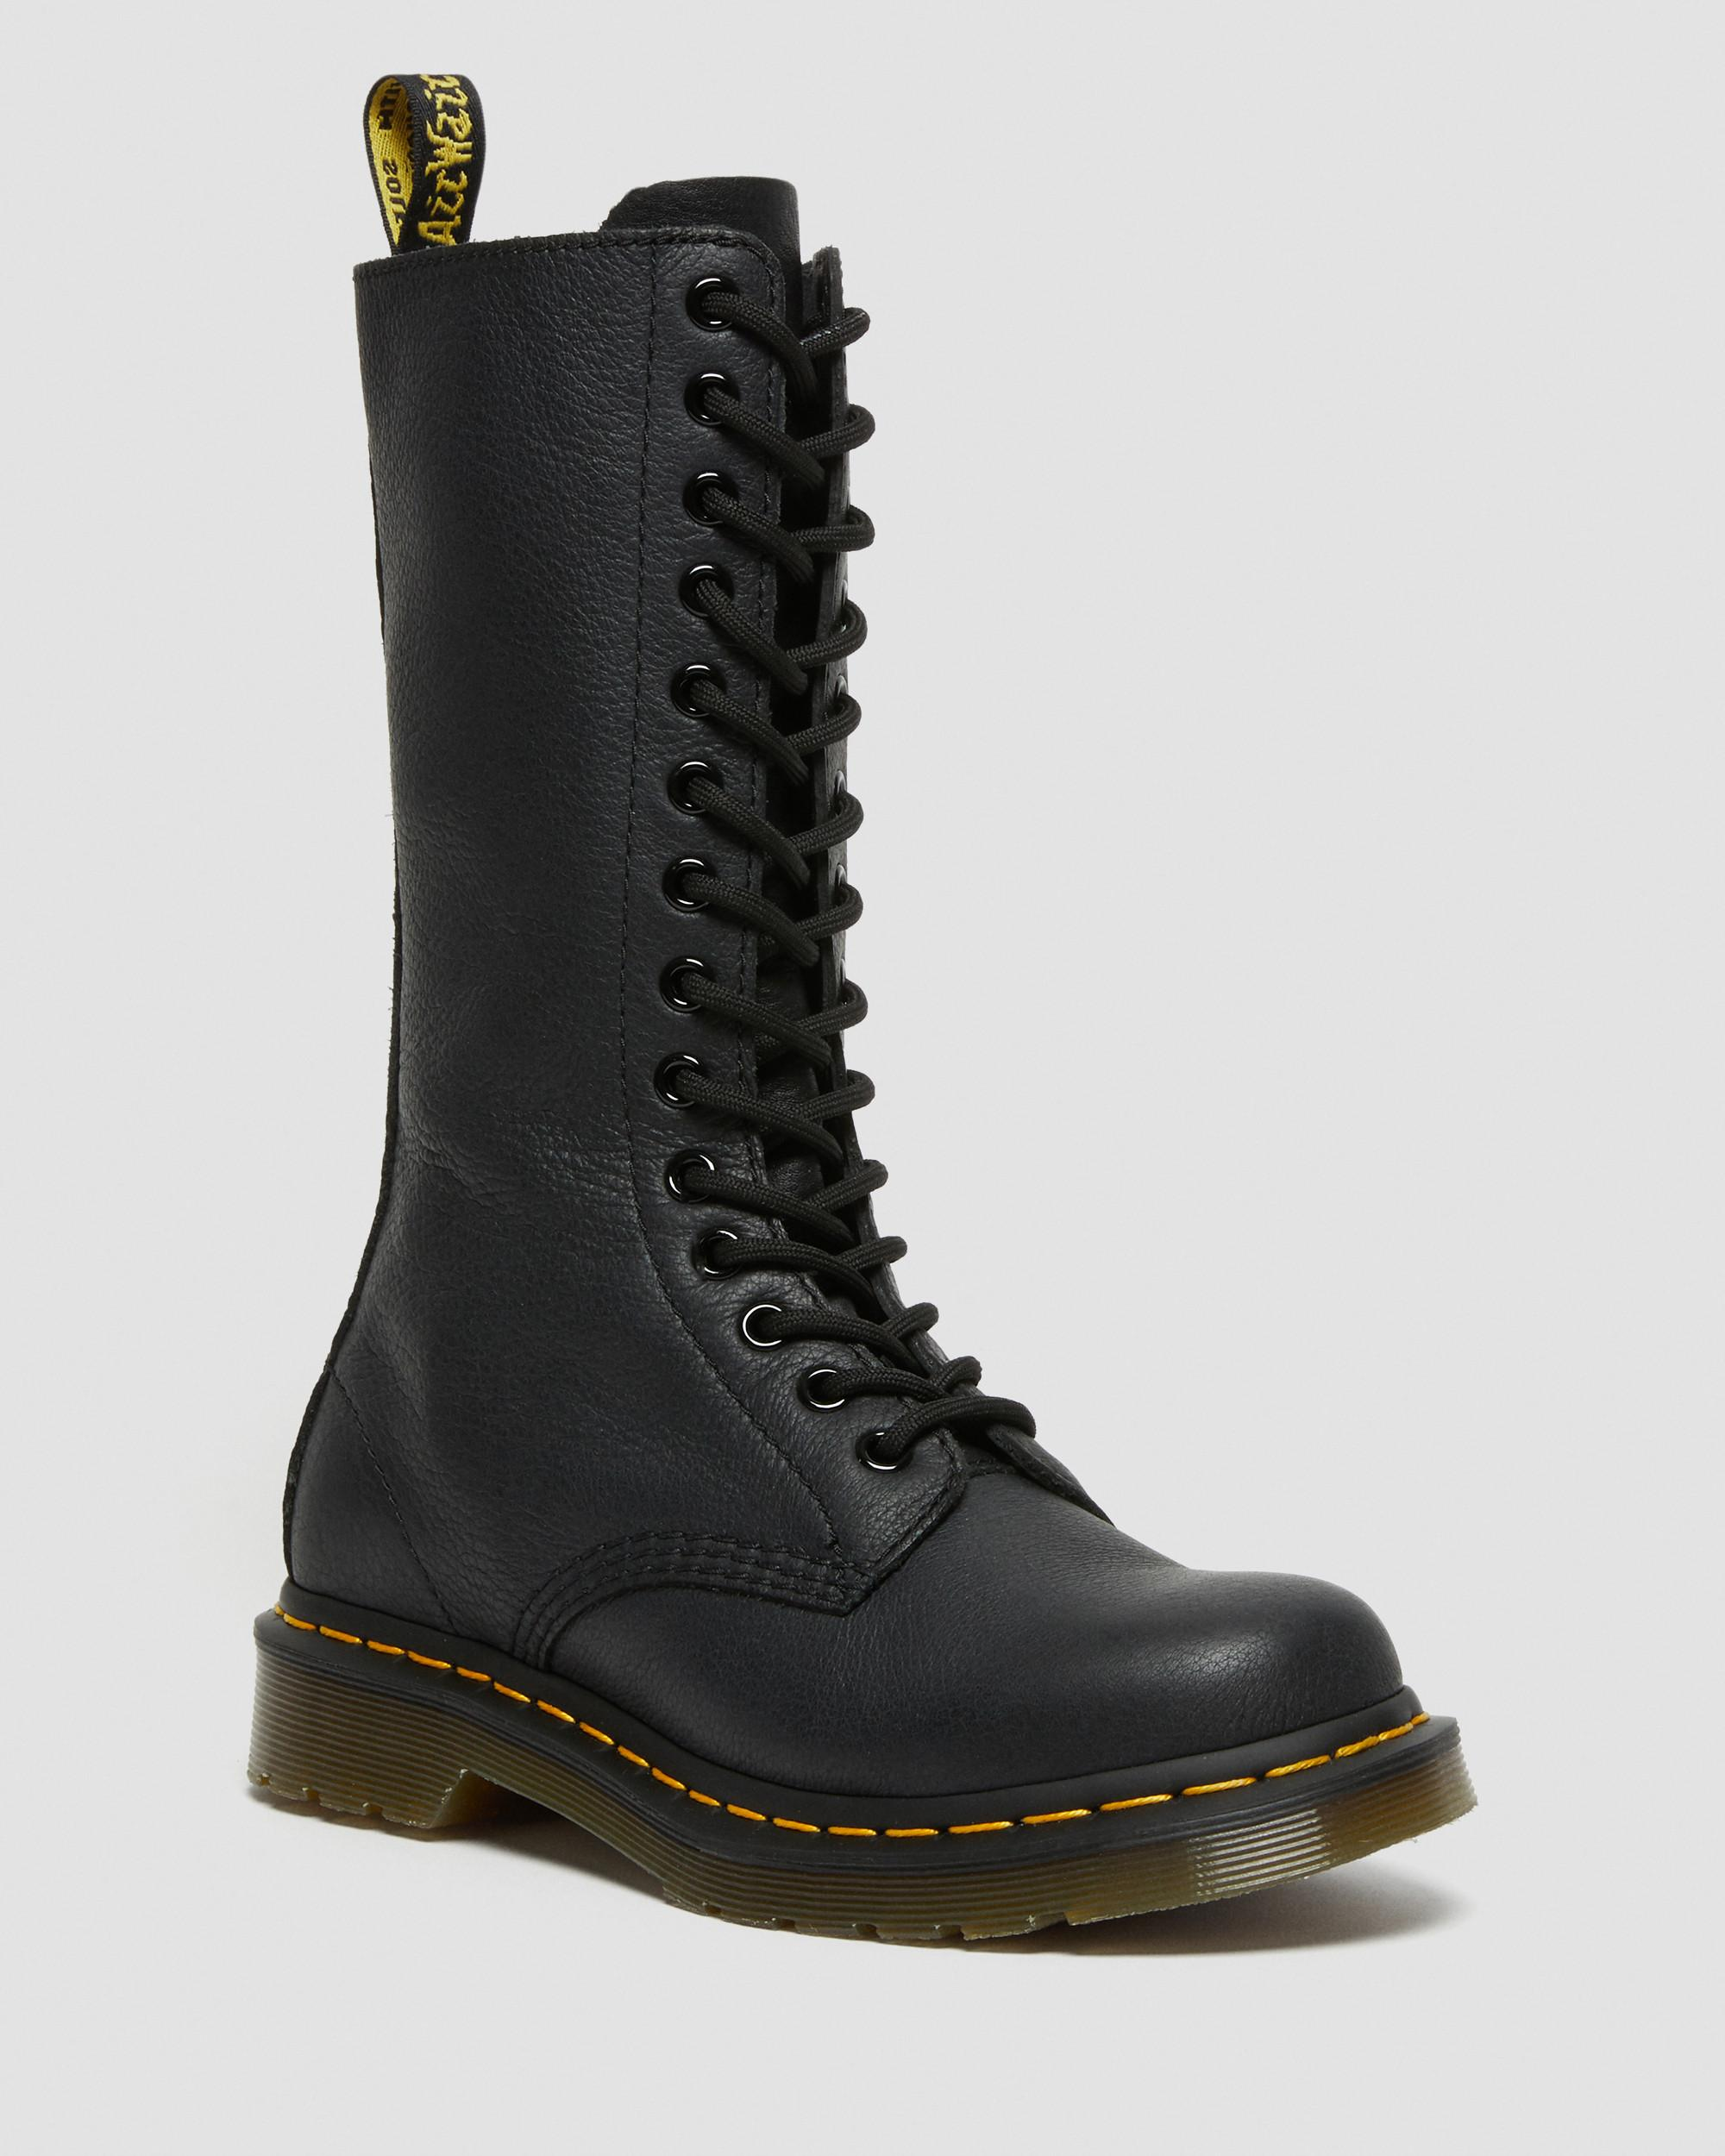 1B99 VIRGINIA LEATHER HIGH BOOTS | Boots femme | Boots